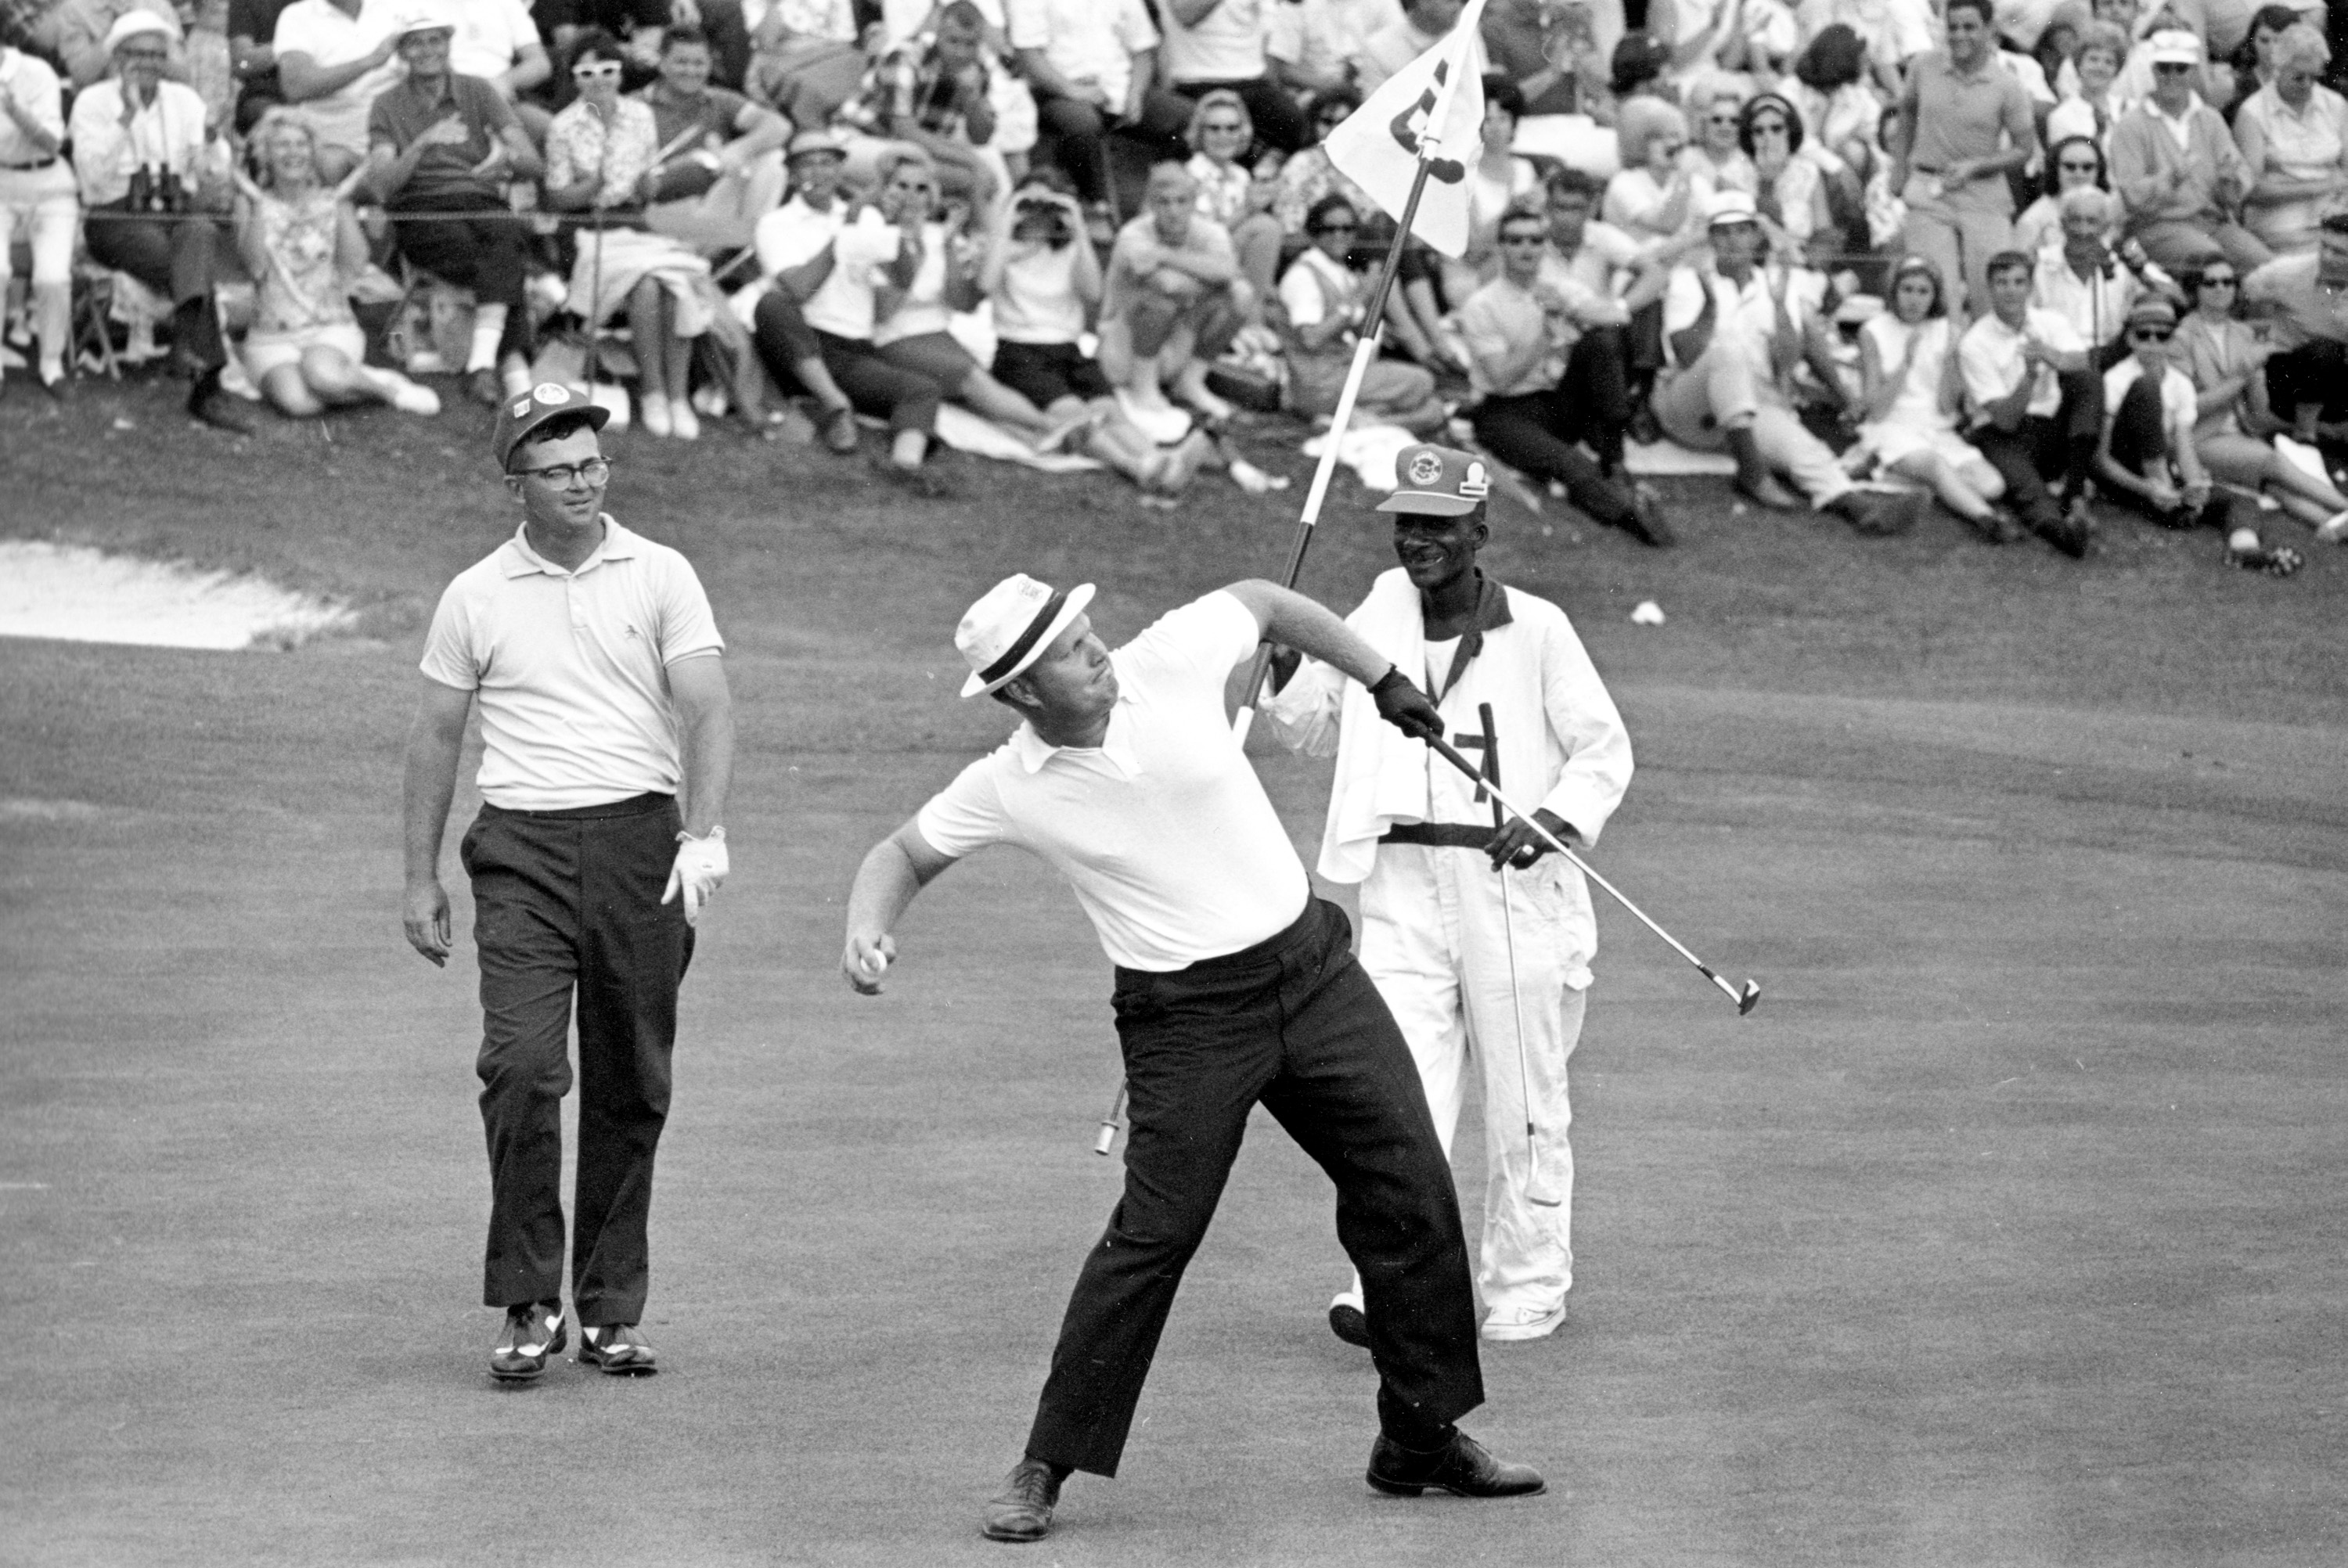 FILE - In this April 11, 1965 file photo, Jack Nicklaus prepares to toss his ball down the fairway after he putted out to win the Masters Championship at Augusta National Golf Club in Augusta, Ga. Nicklaus was tied with Gary Player and Arnold Palmer after